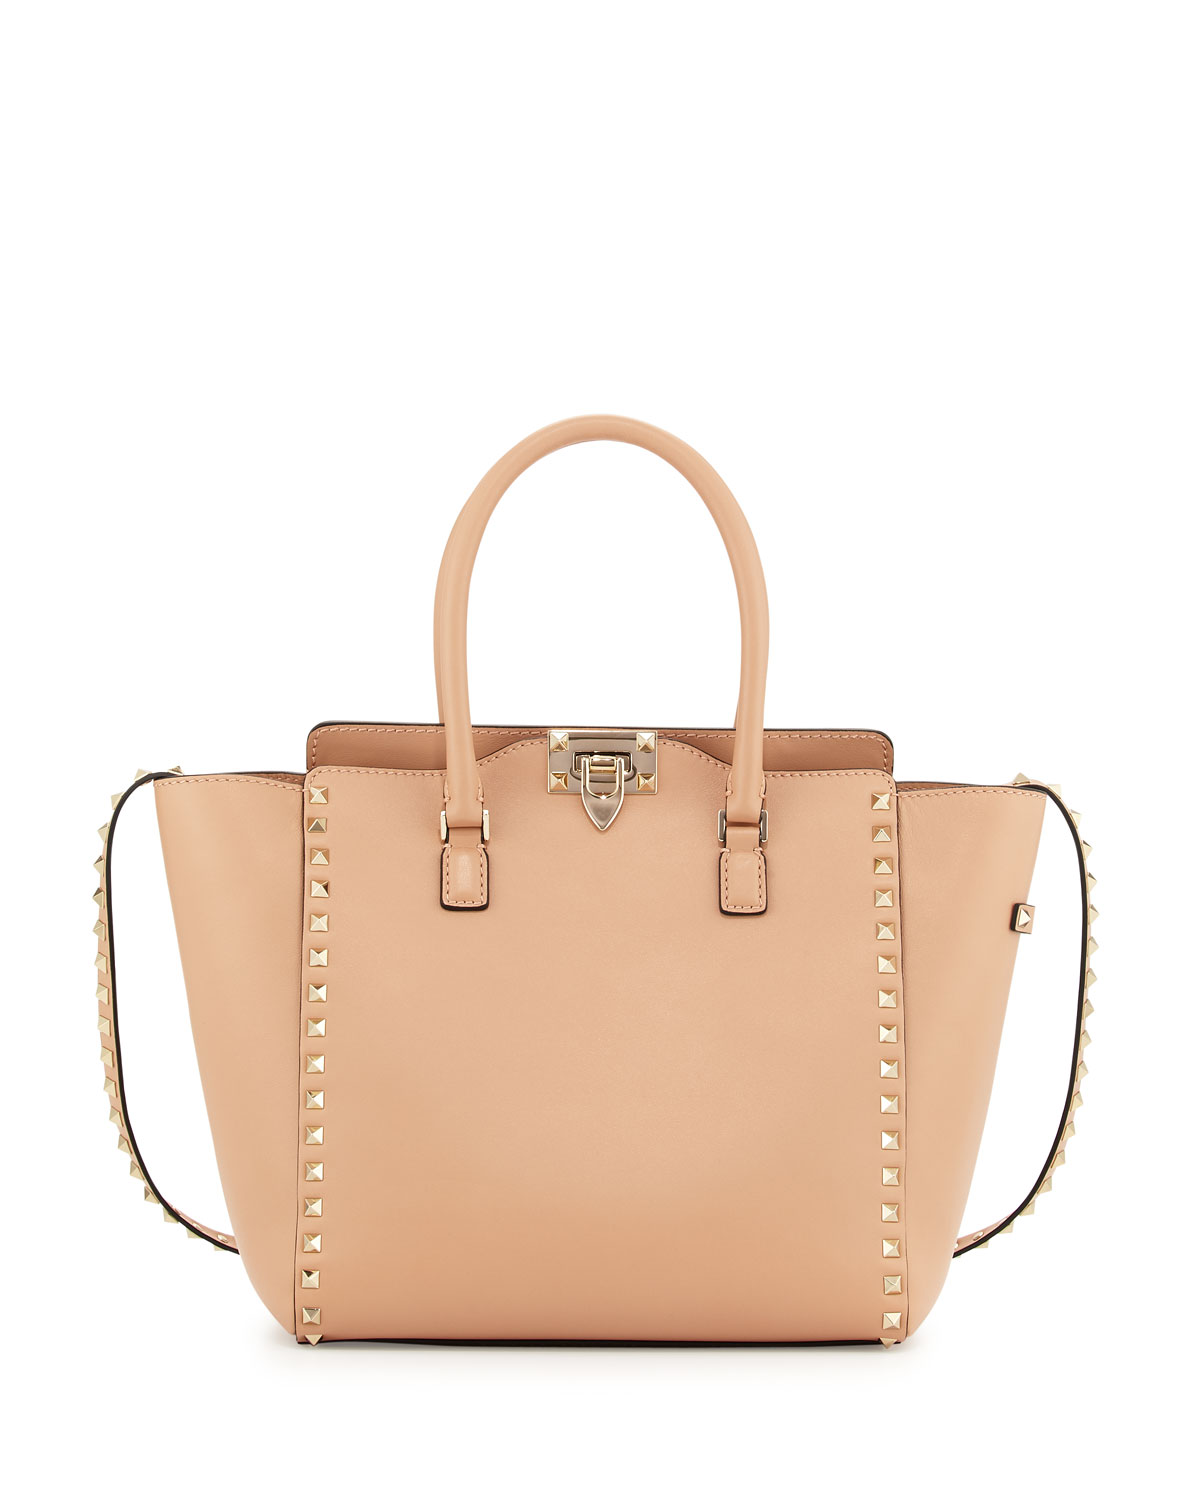 Rockstud Leather Pagoda Shopper Bag, Dark Beige - Valentino